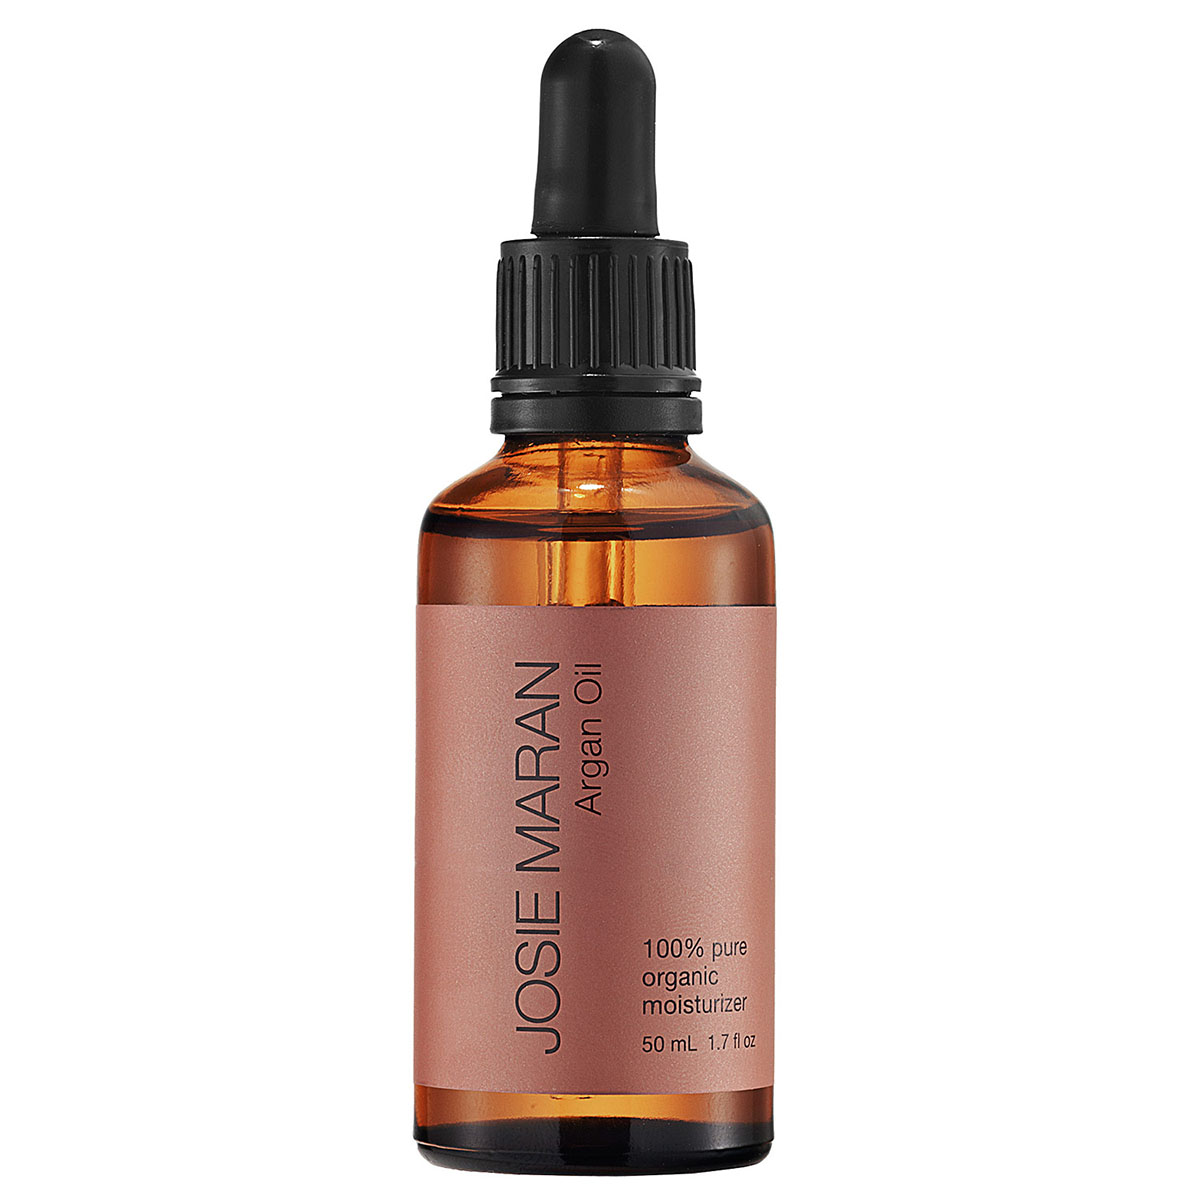 Jose Maran Argan Oil